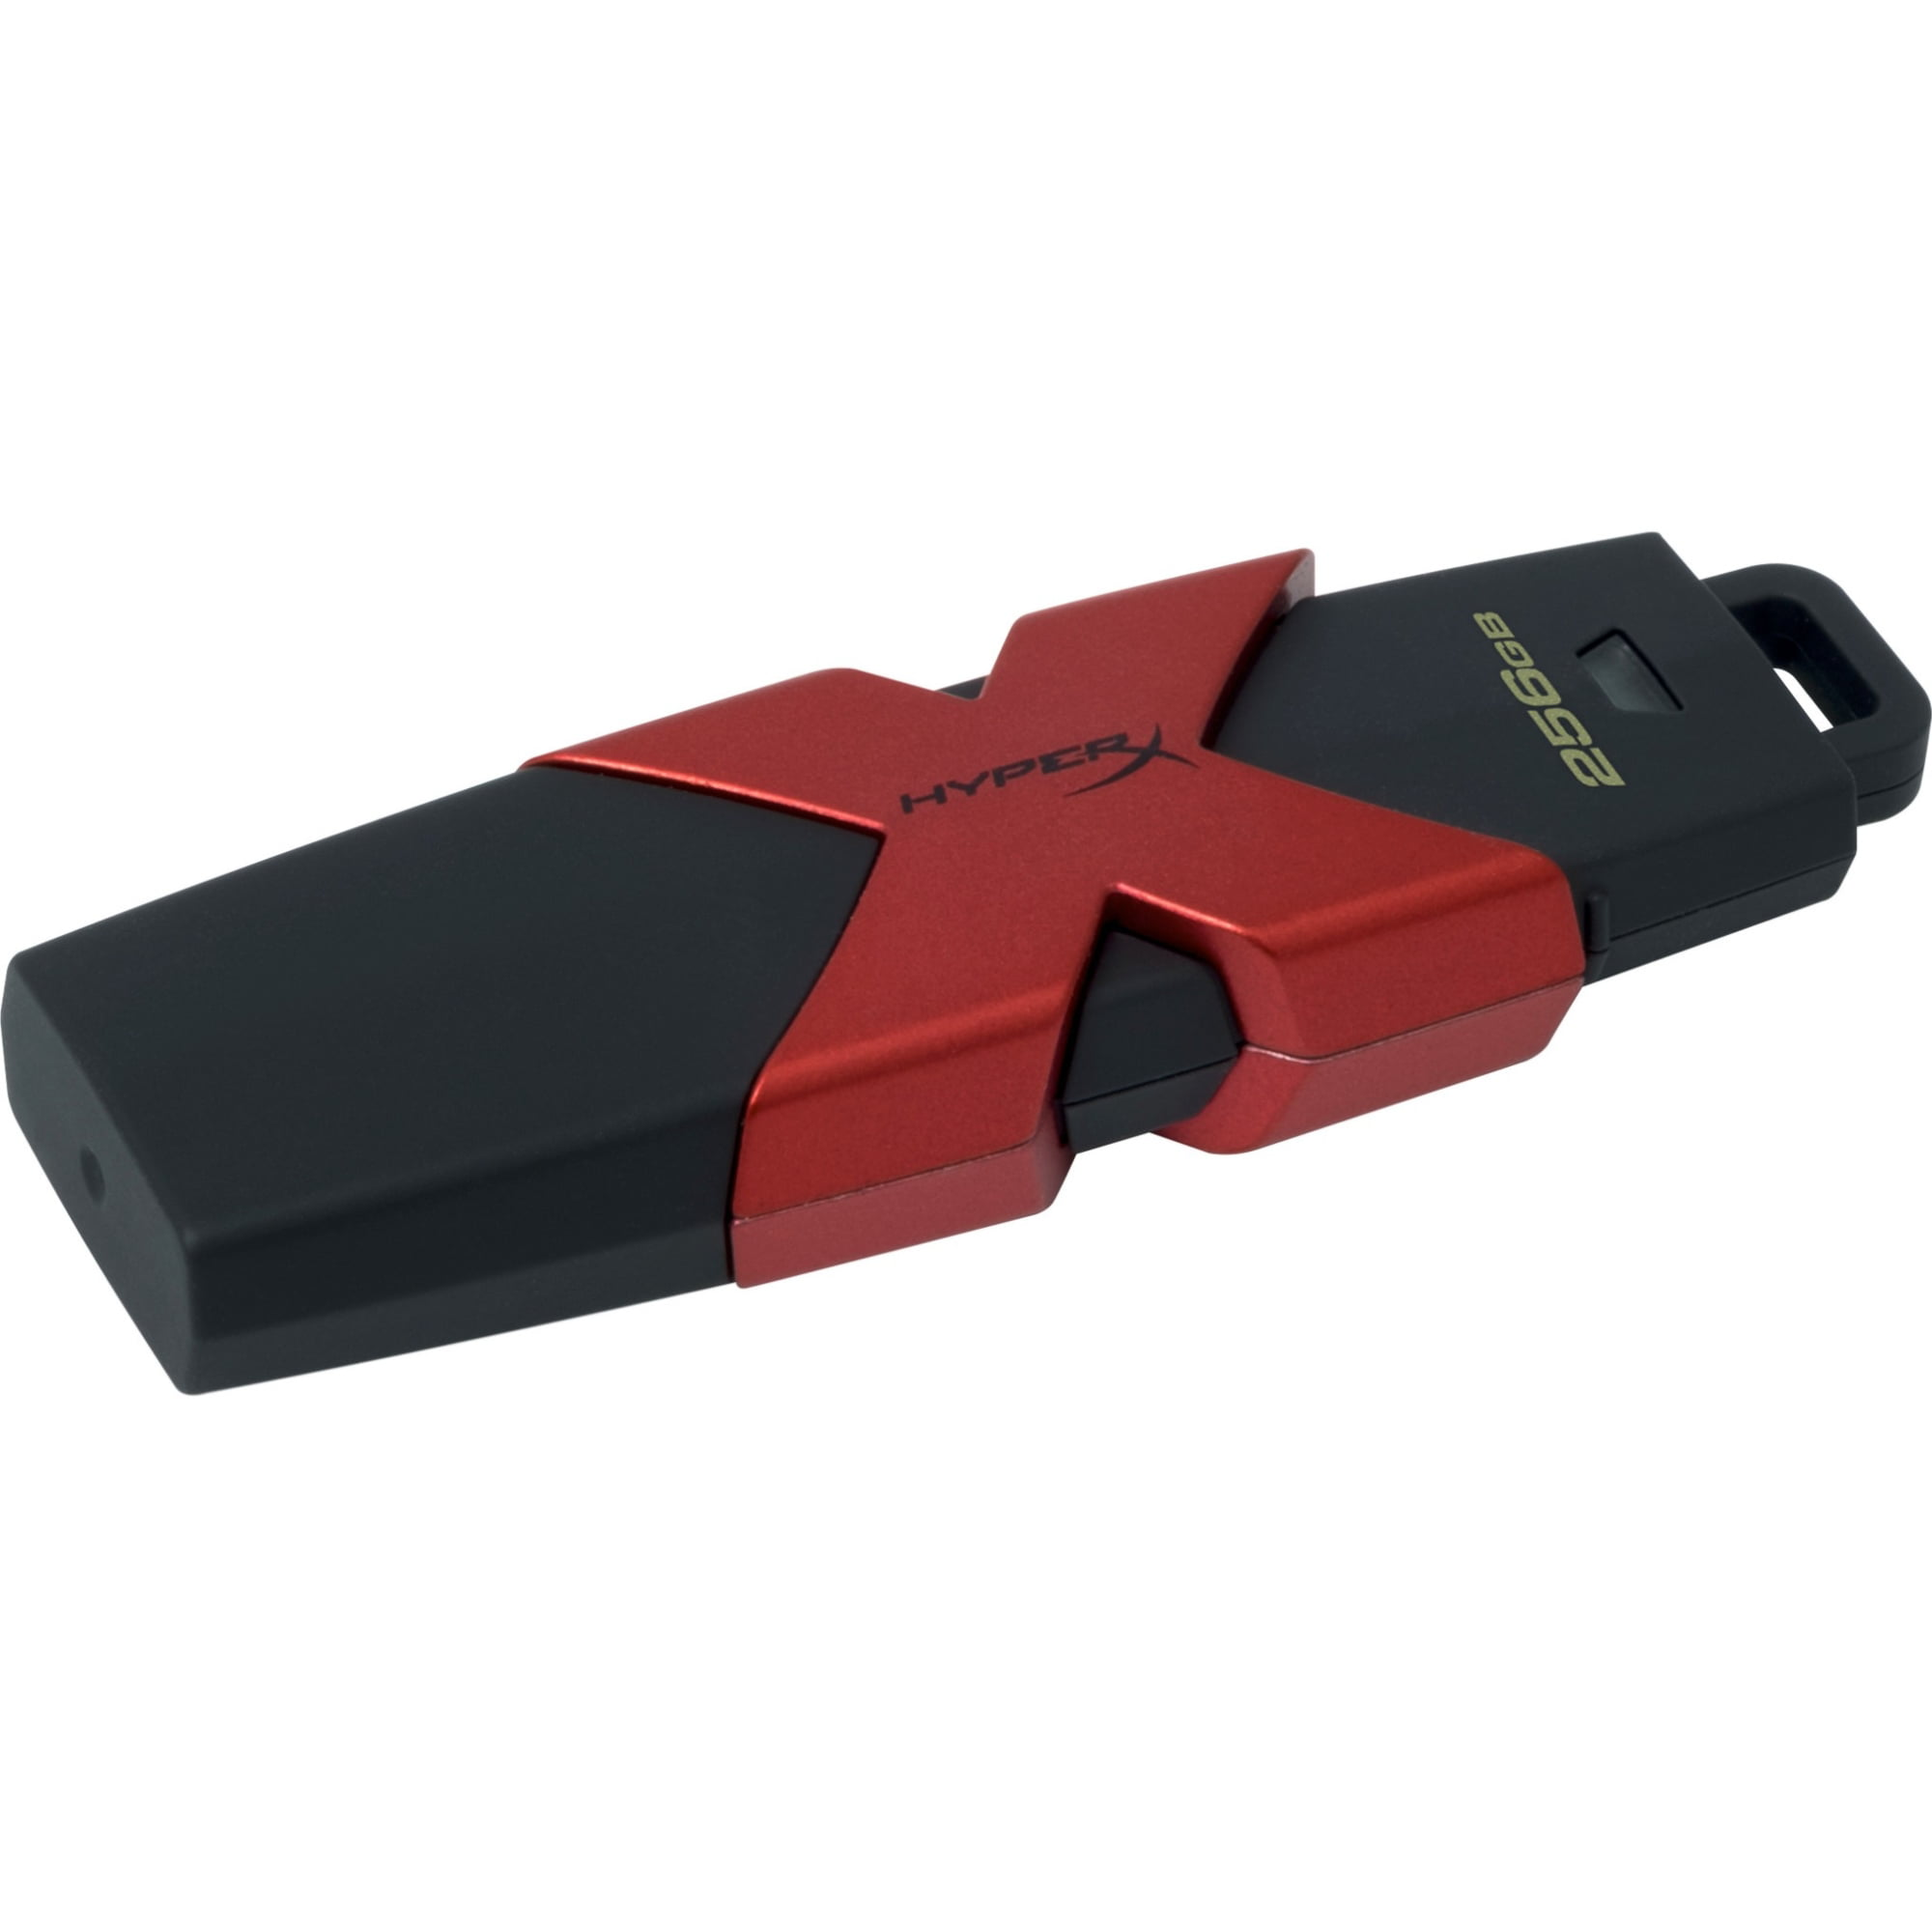 Kingston 256GB HX Savage USB 3.1 3.0 Flash Drive by Kingston